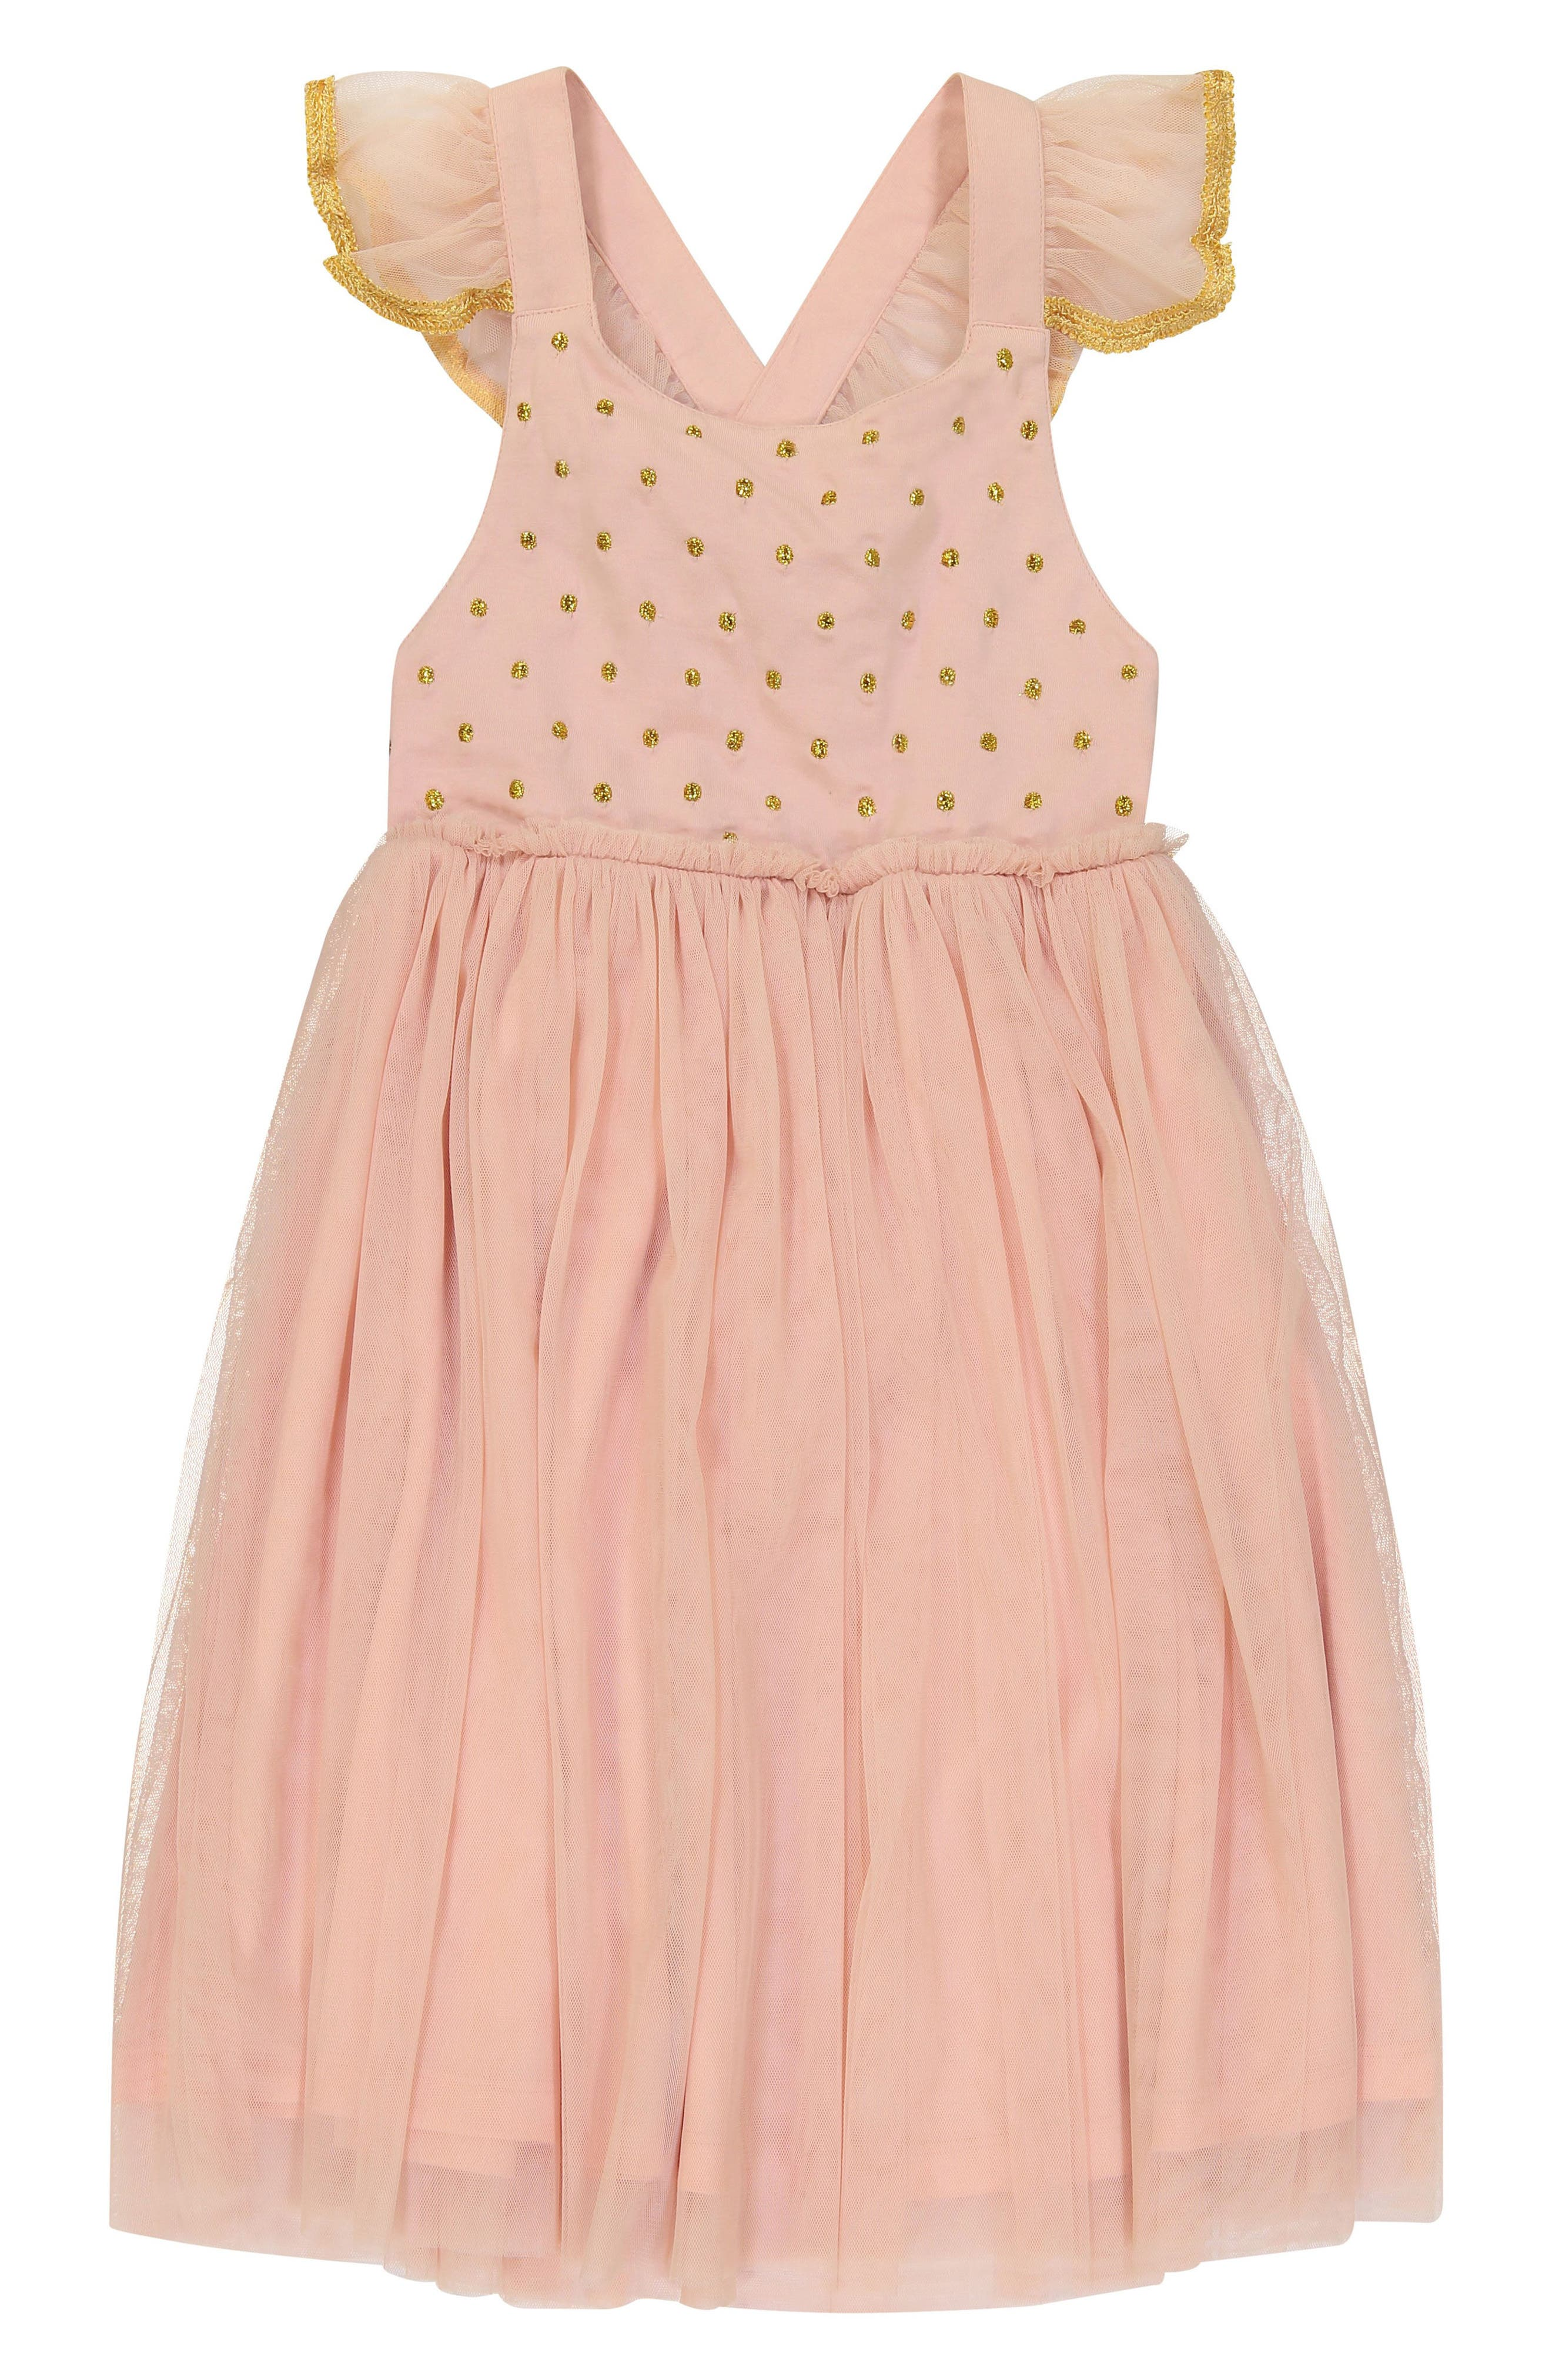 Diya Tulle Sundress,                             Main thumbnail 1, color,